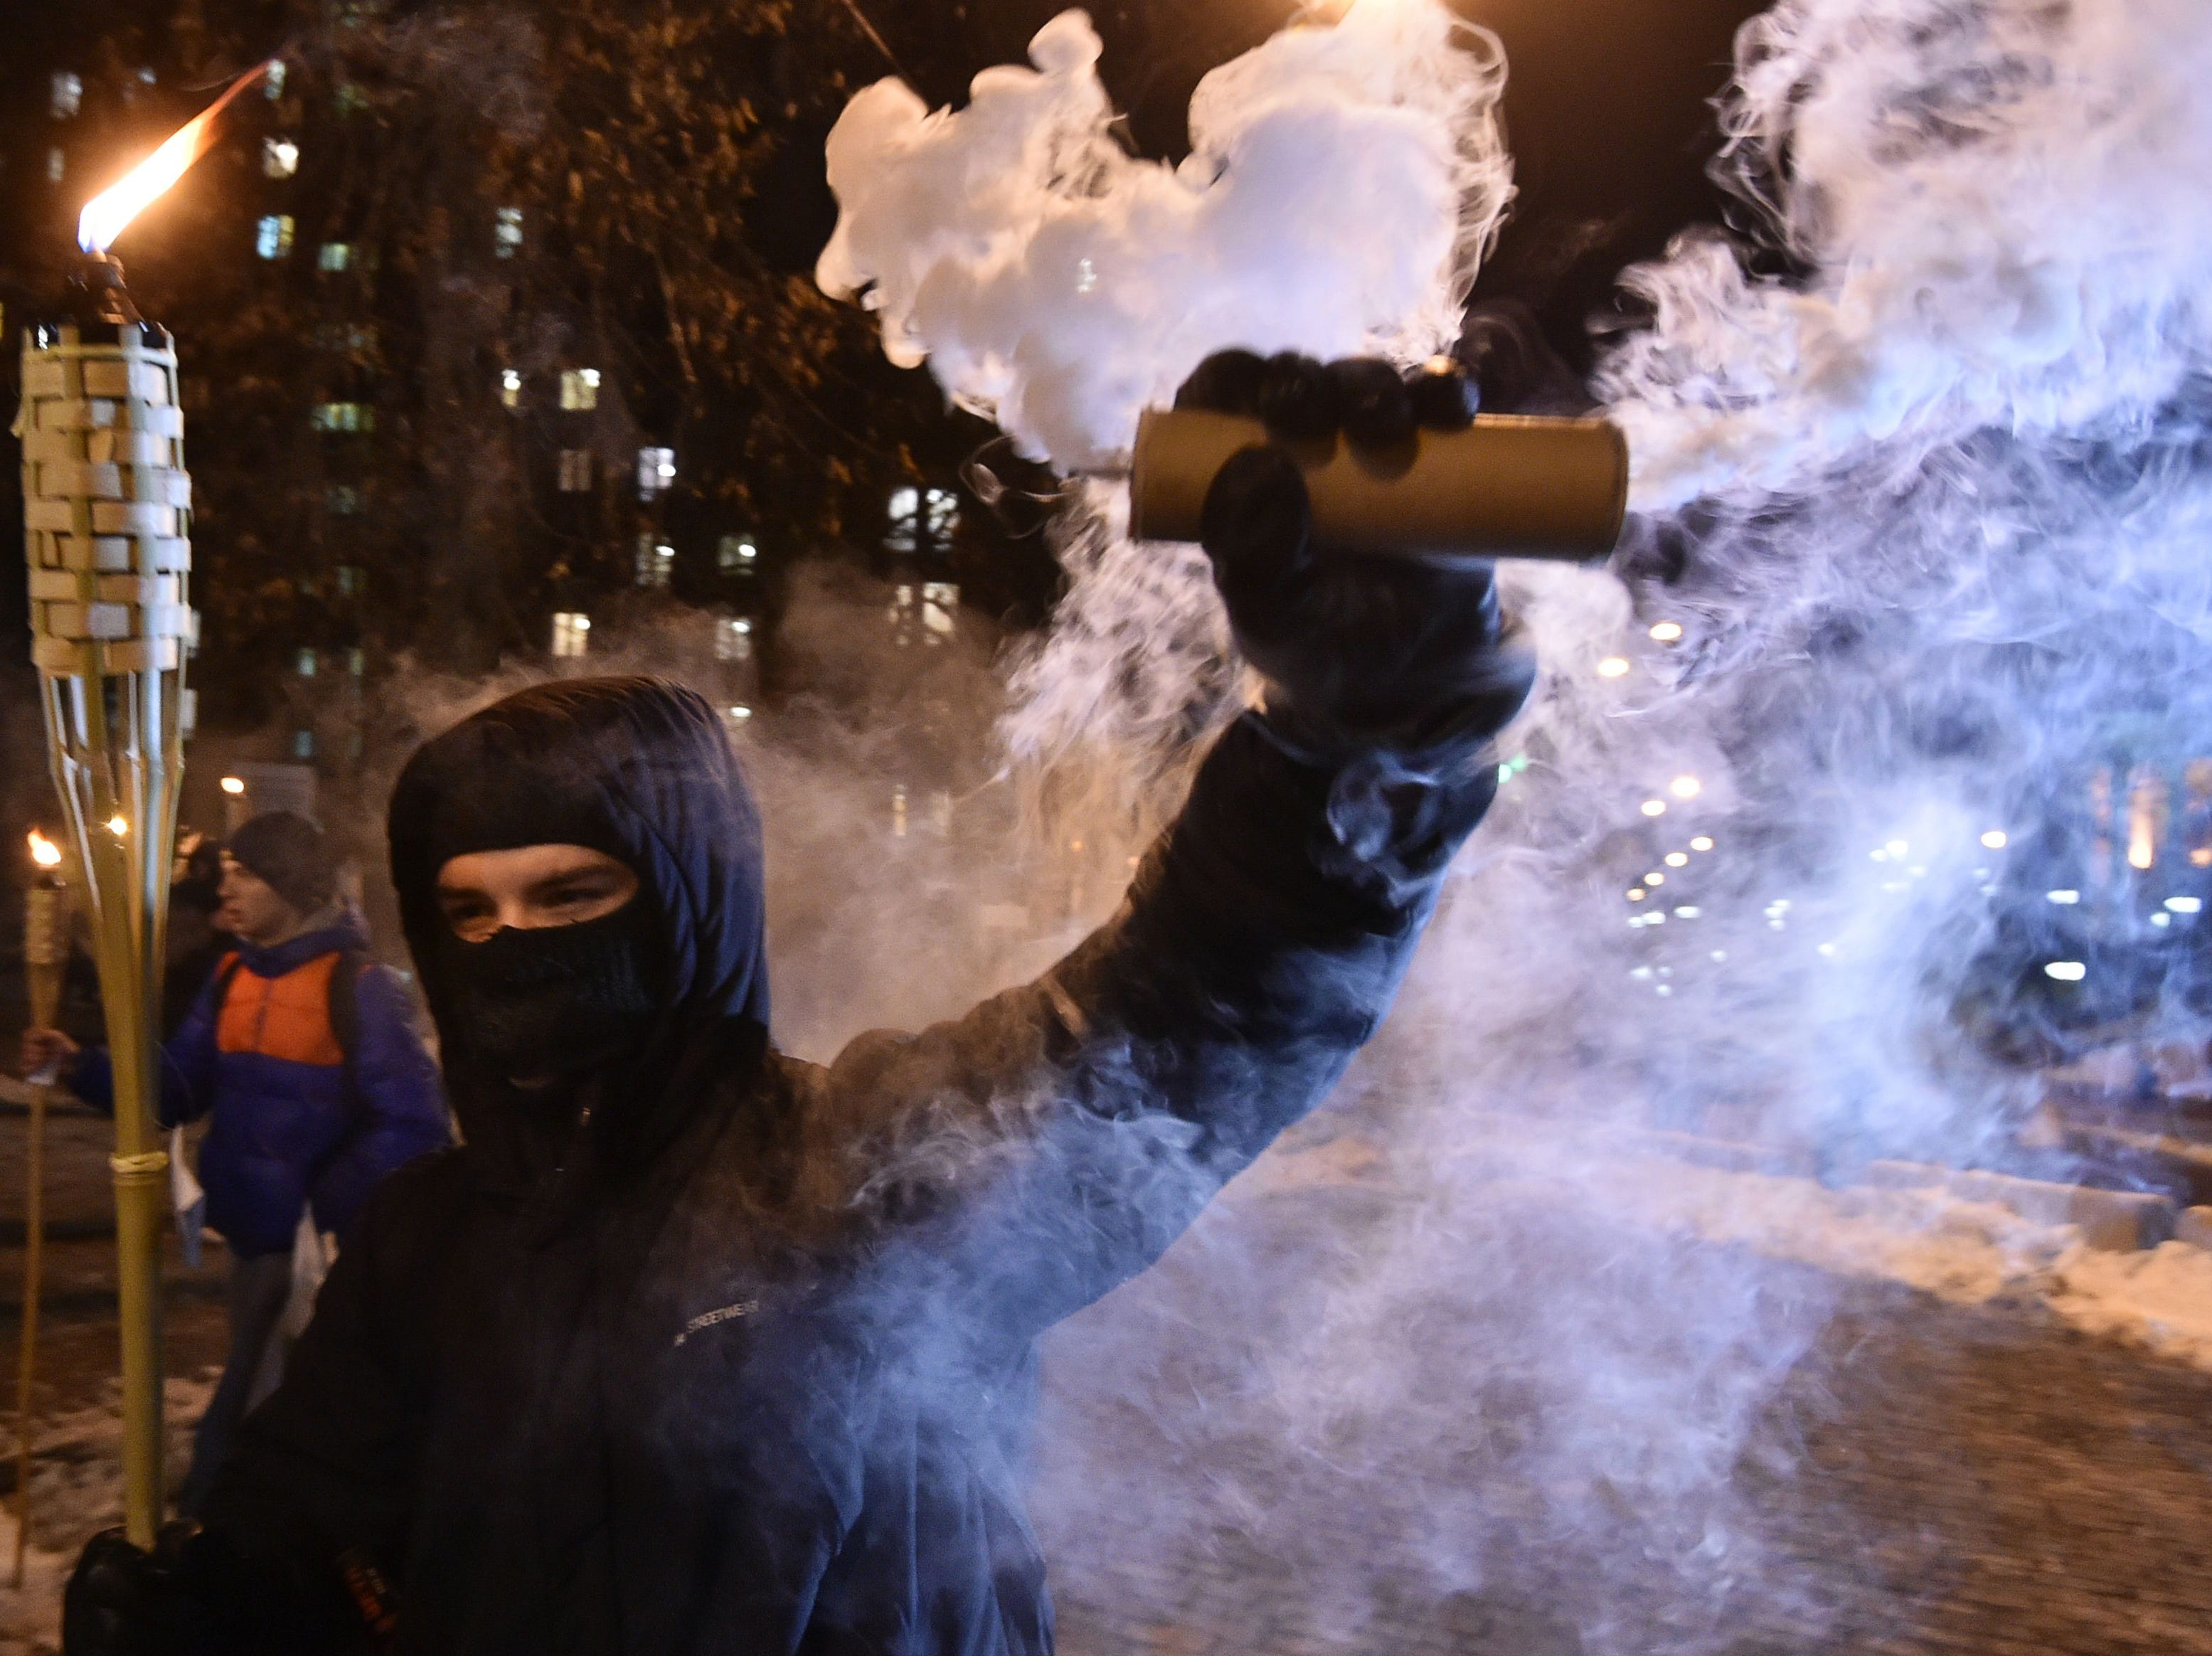 A protester holds a torch and a smoke flare during a march in the Ukrainian capital Kiev on November 29, 2018, to ask for justice for protesters killed on Kiev's Maidan square in 2014 during the 'Maidan' revolution, which ousted a pro-Moscow government but sparked war in the east of the country and led to Russia annexing Crimea.